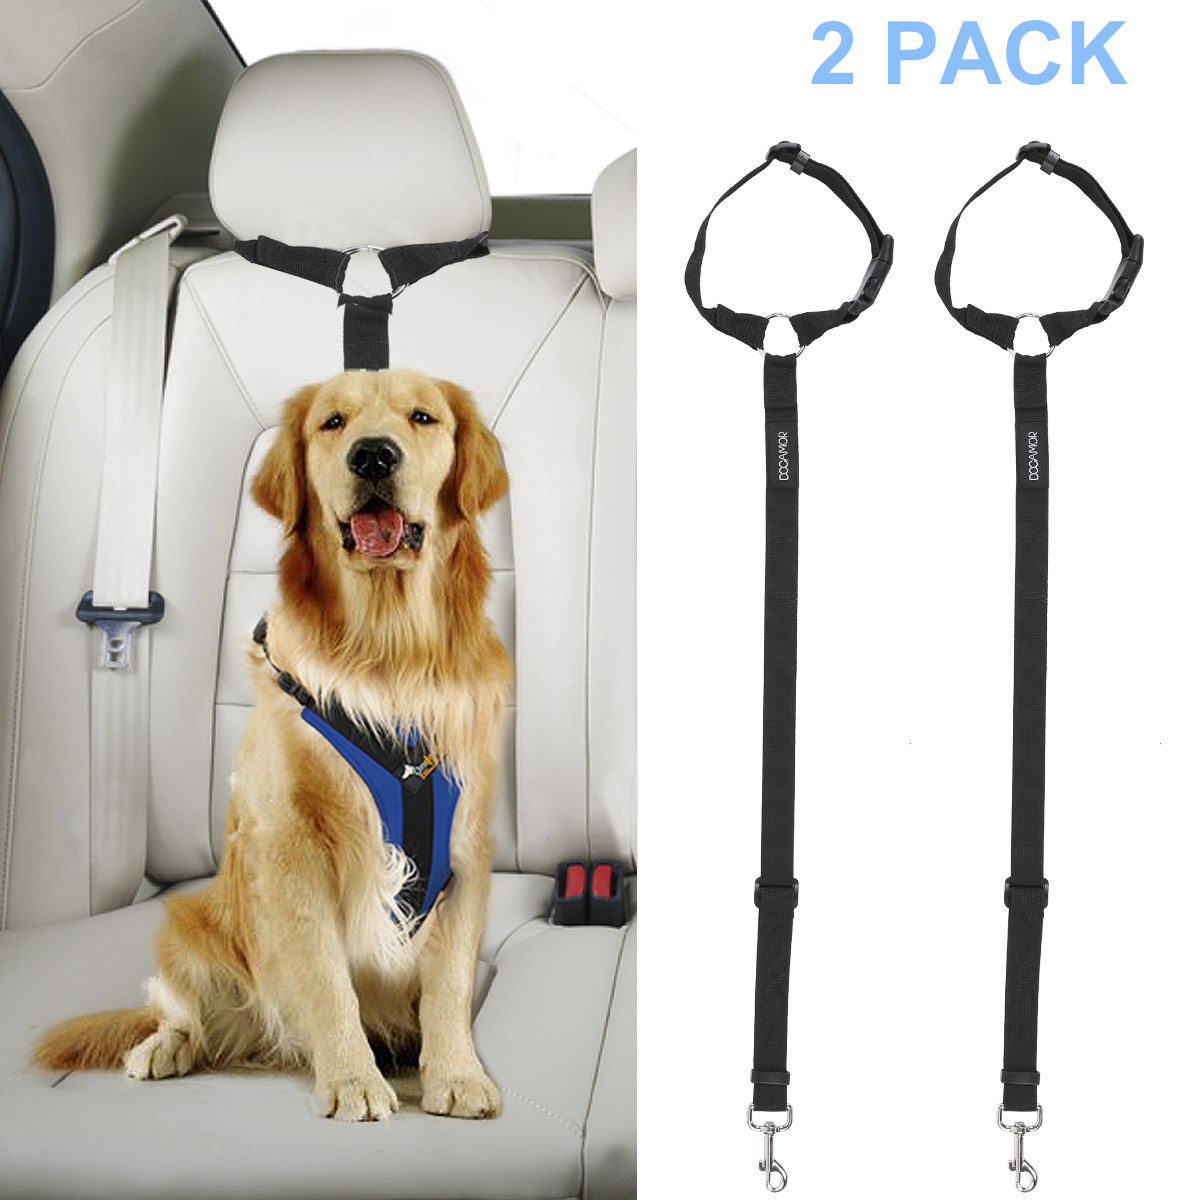 Adjustable Dog Seat Belt Dog Harness Pet Car Vehicle Seat Belt Pet Safety Leash Leads For Dogs/Cats Adjustable From 18 To 30 Inch Nylon Fabric Material Sapphire Blue